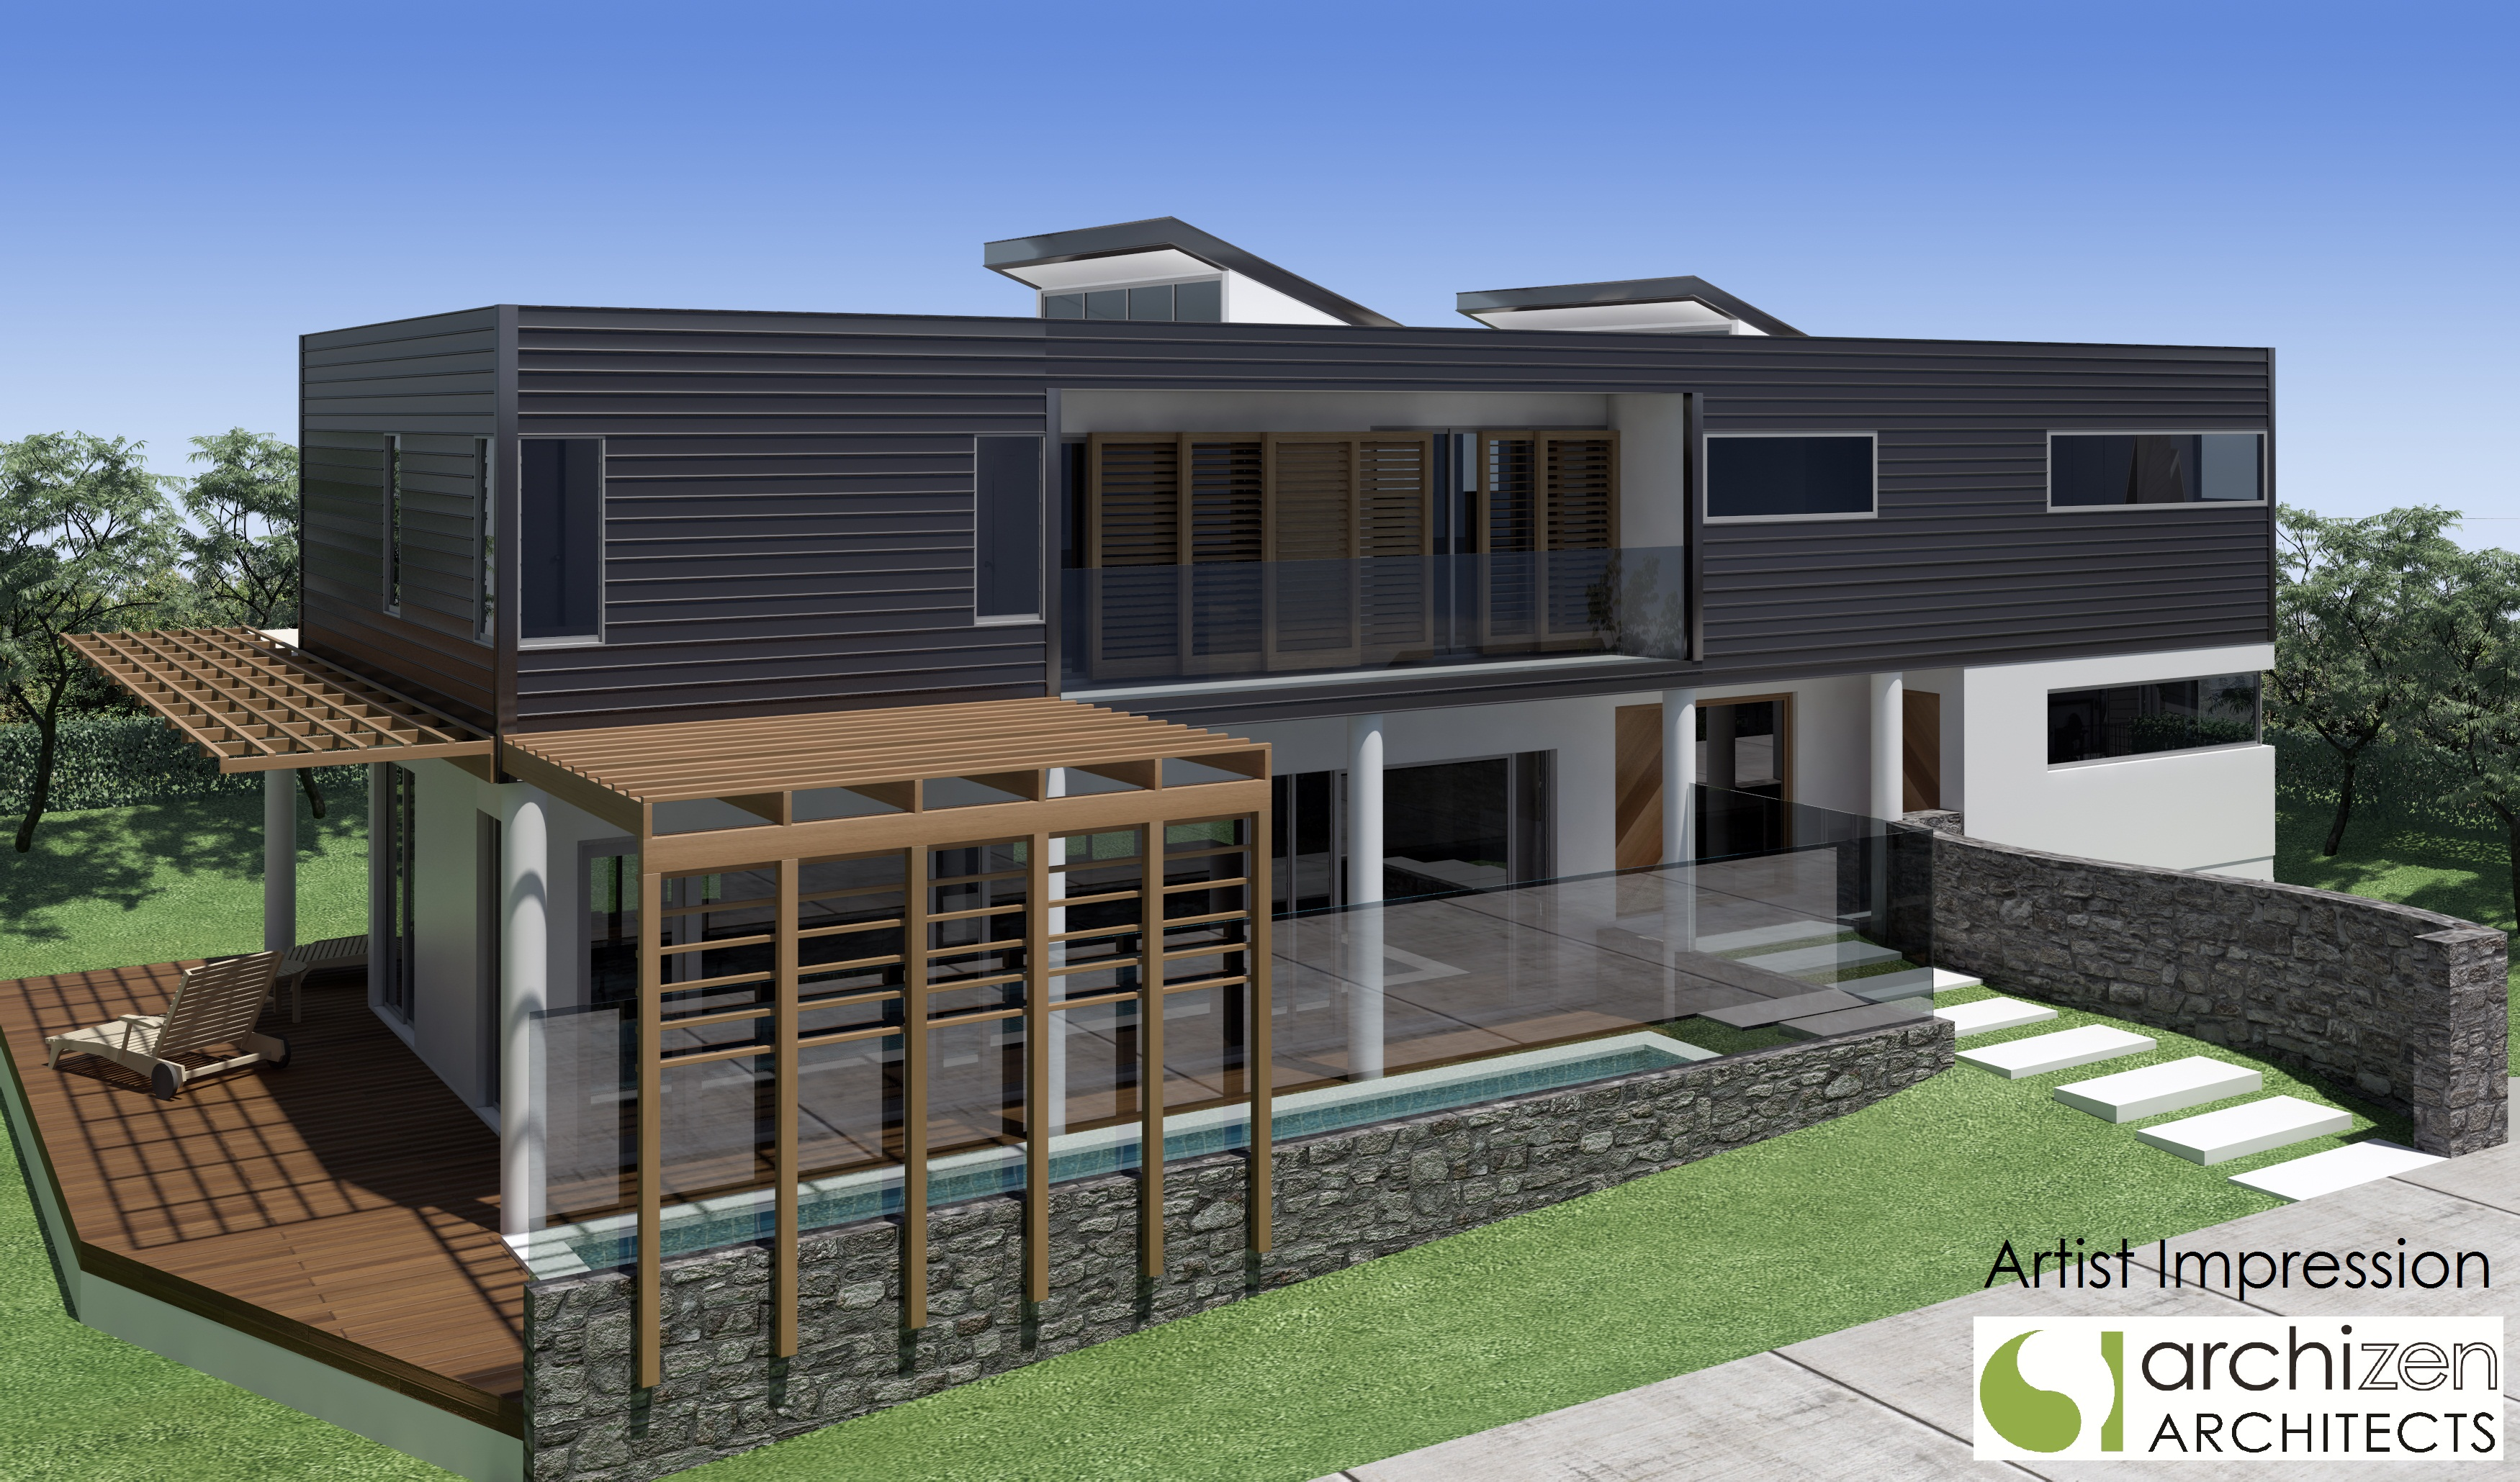 Archizen_Architects_New Executive_Bayside_Home_Design_Connells_Point_NSW_2221_Kogarah Council